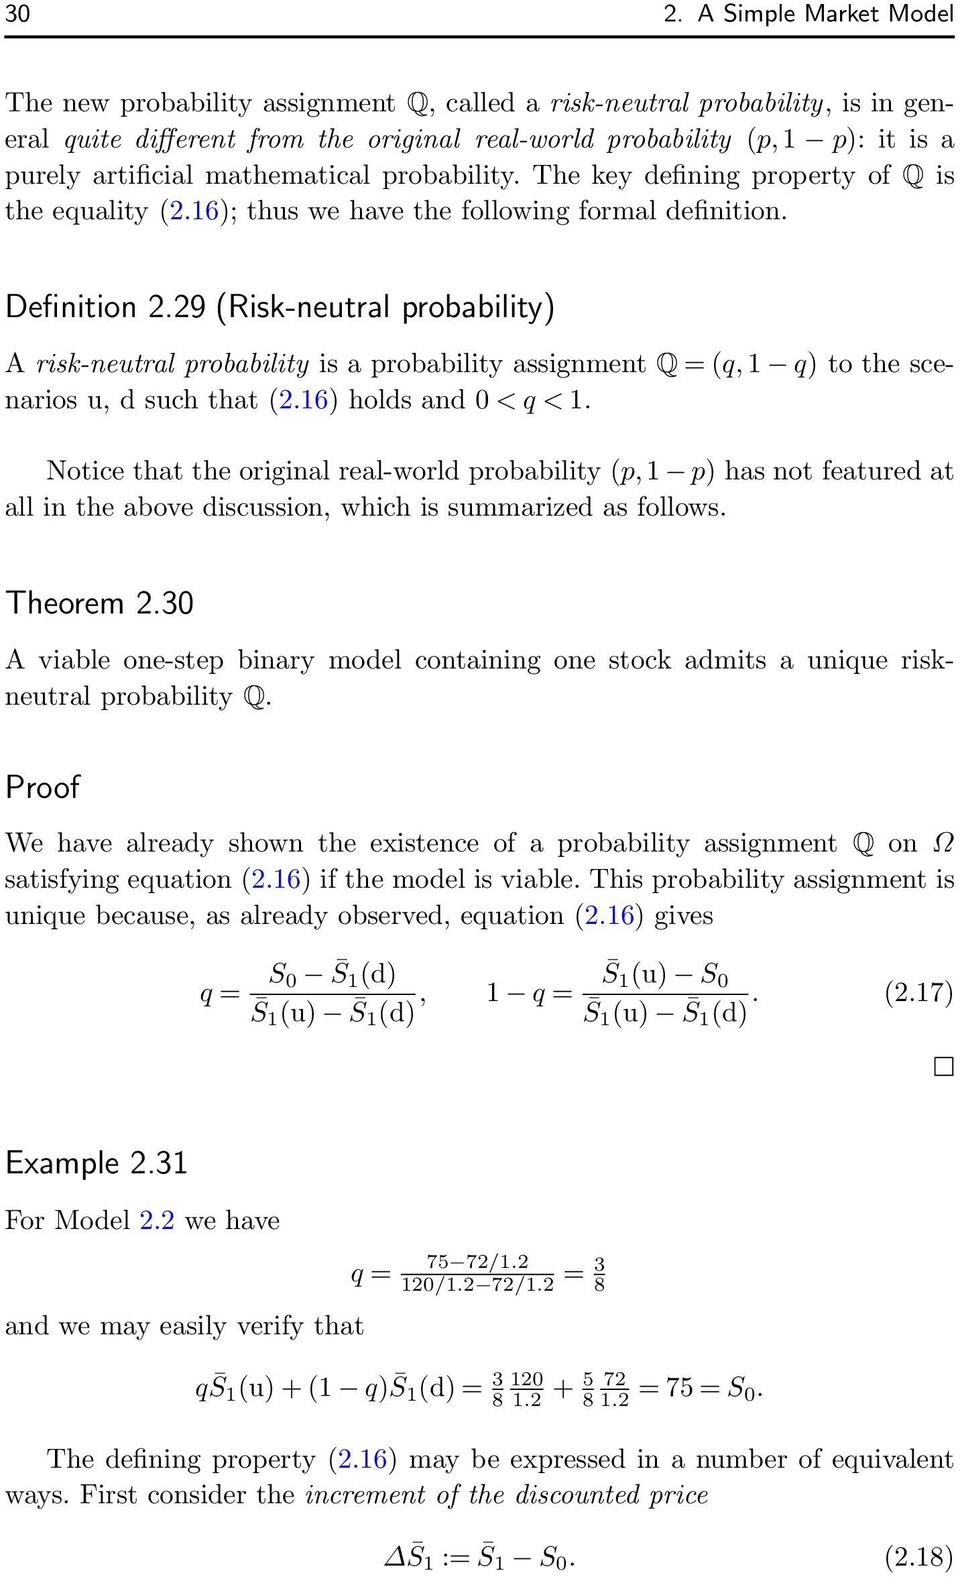 29 (Risk-neutral probability) A risk-neutral probability is a probability assignment Q =(q,1 q) to the scenarios u, d such that (2.16) holds and 0 <q<1.